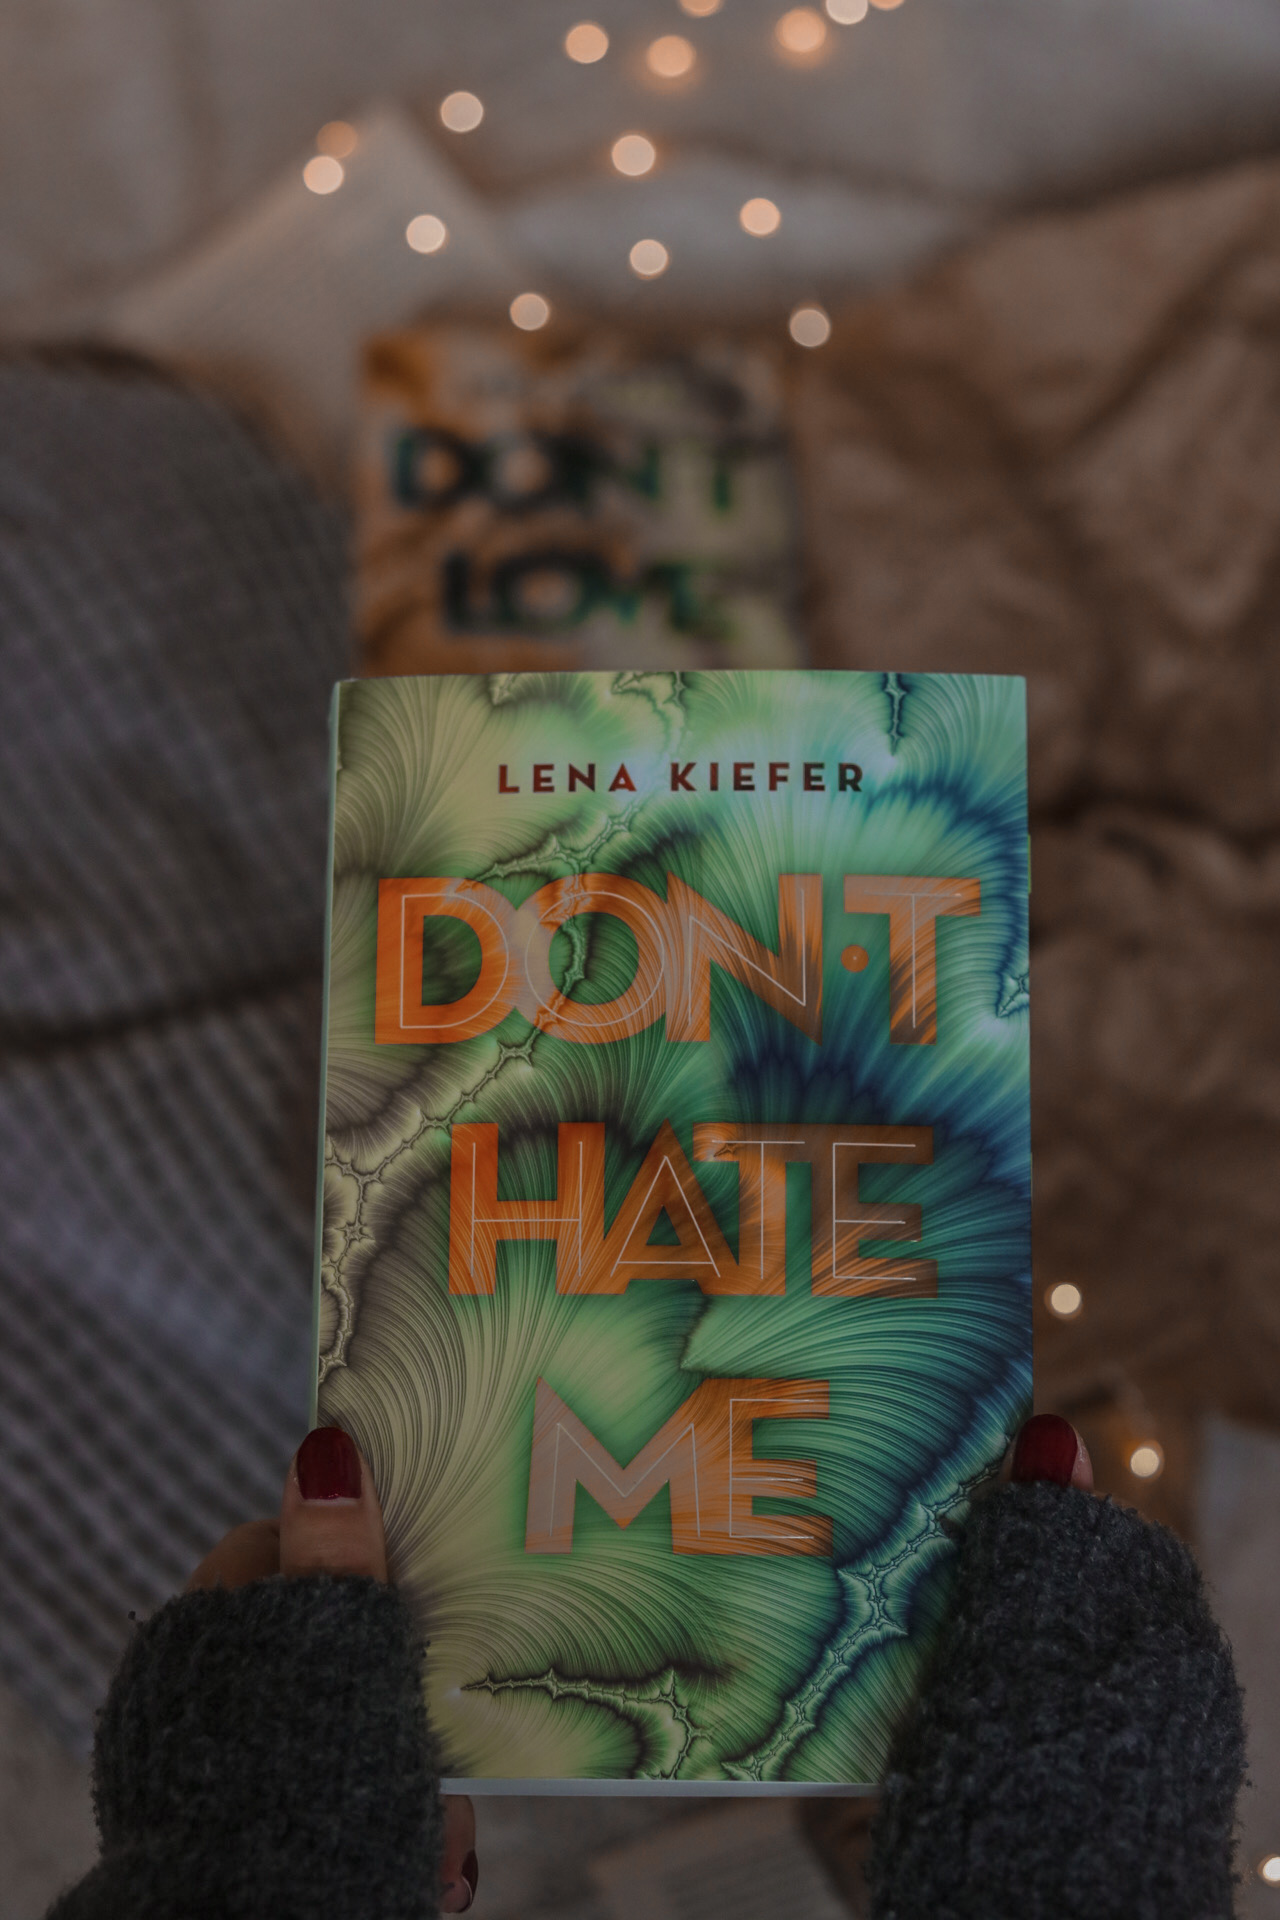 Don't hate me – Don't Reihe #2 | Lena Kiefer